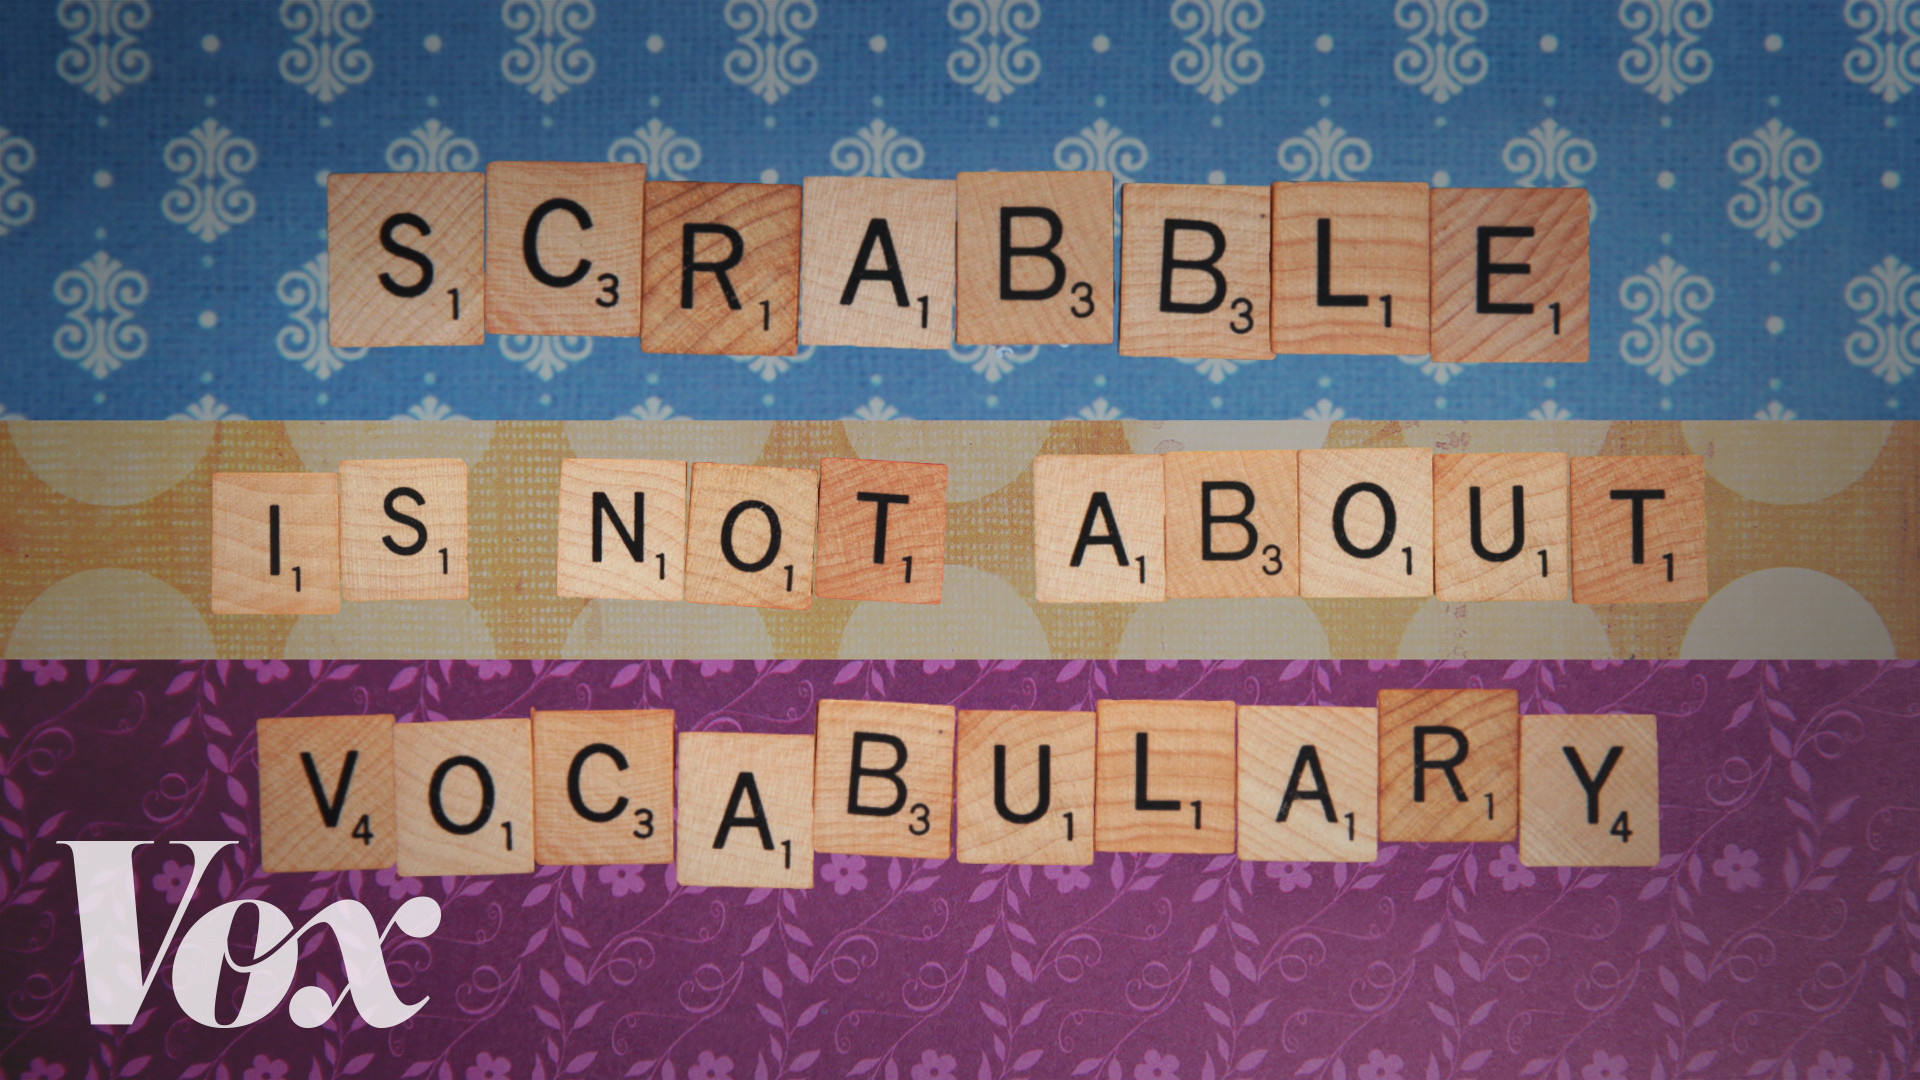 Learn these 8 Scrabble words to supercharge your game Vox